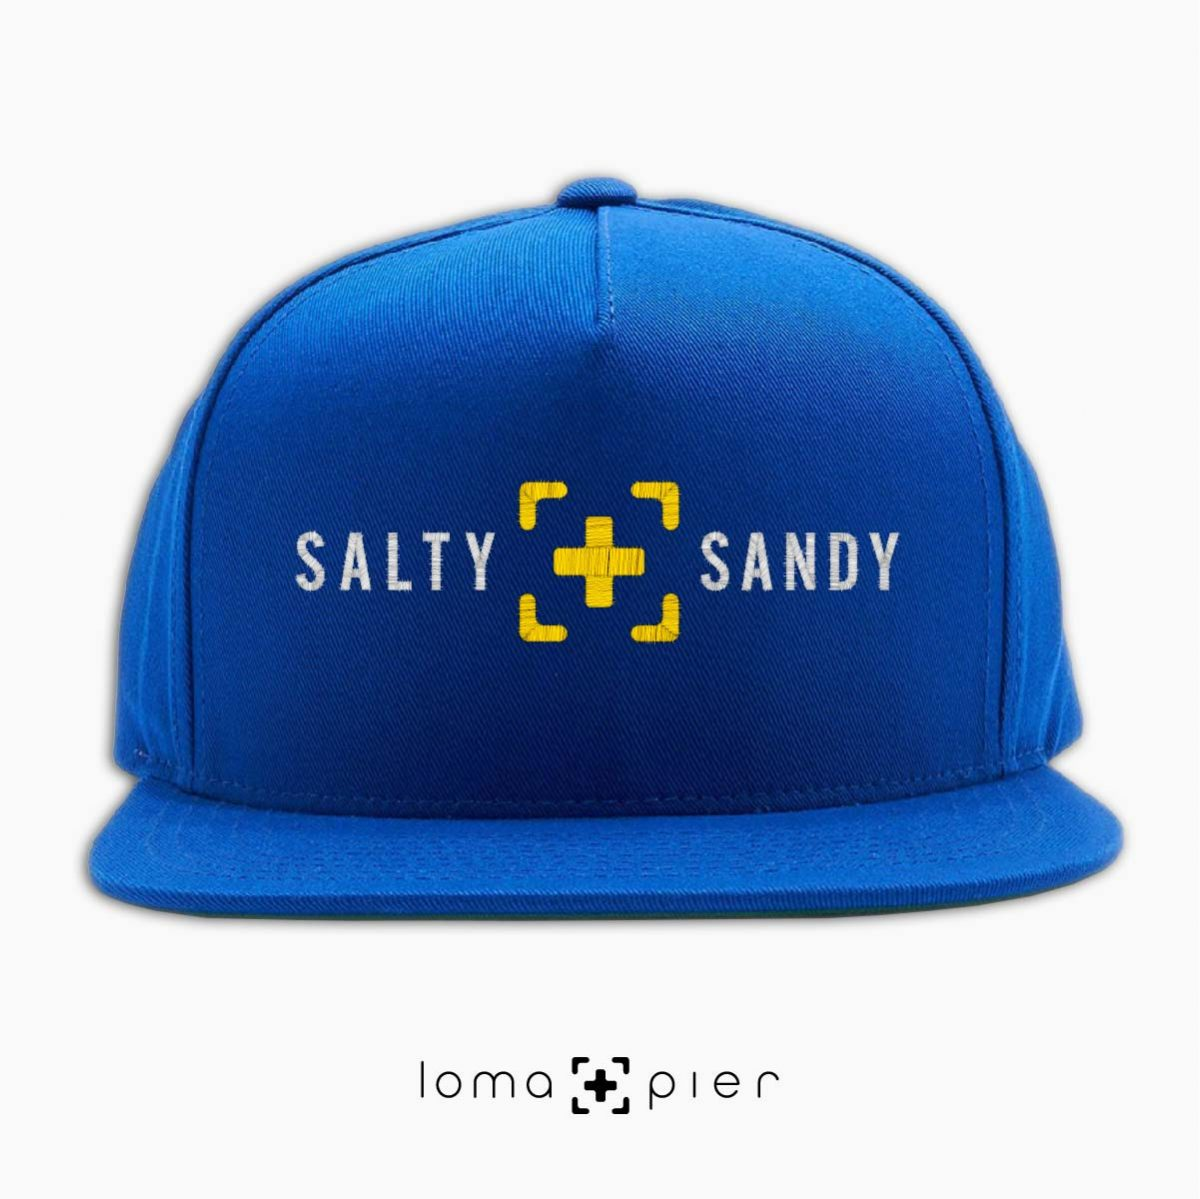 SALTY+SANDY beach snapback hat in royal blue by lomapier hat store